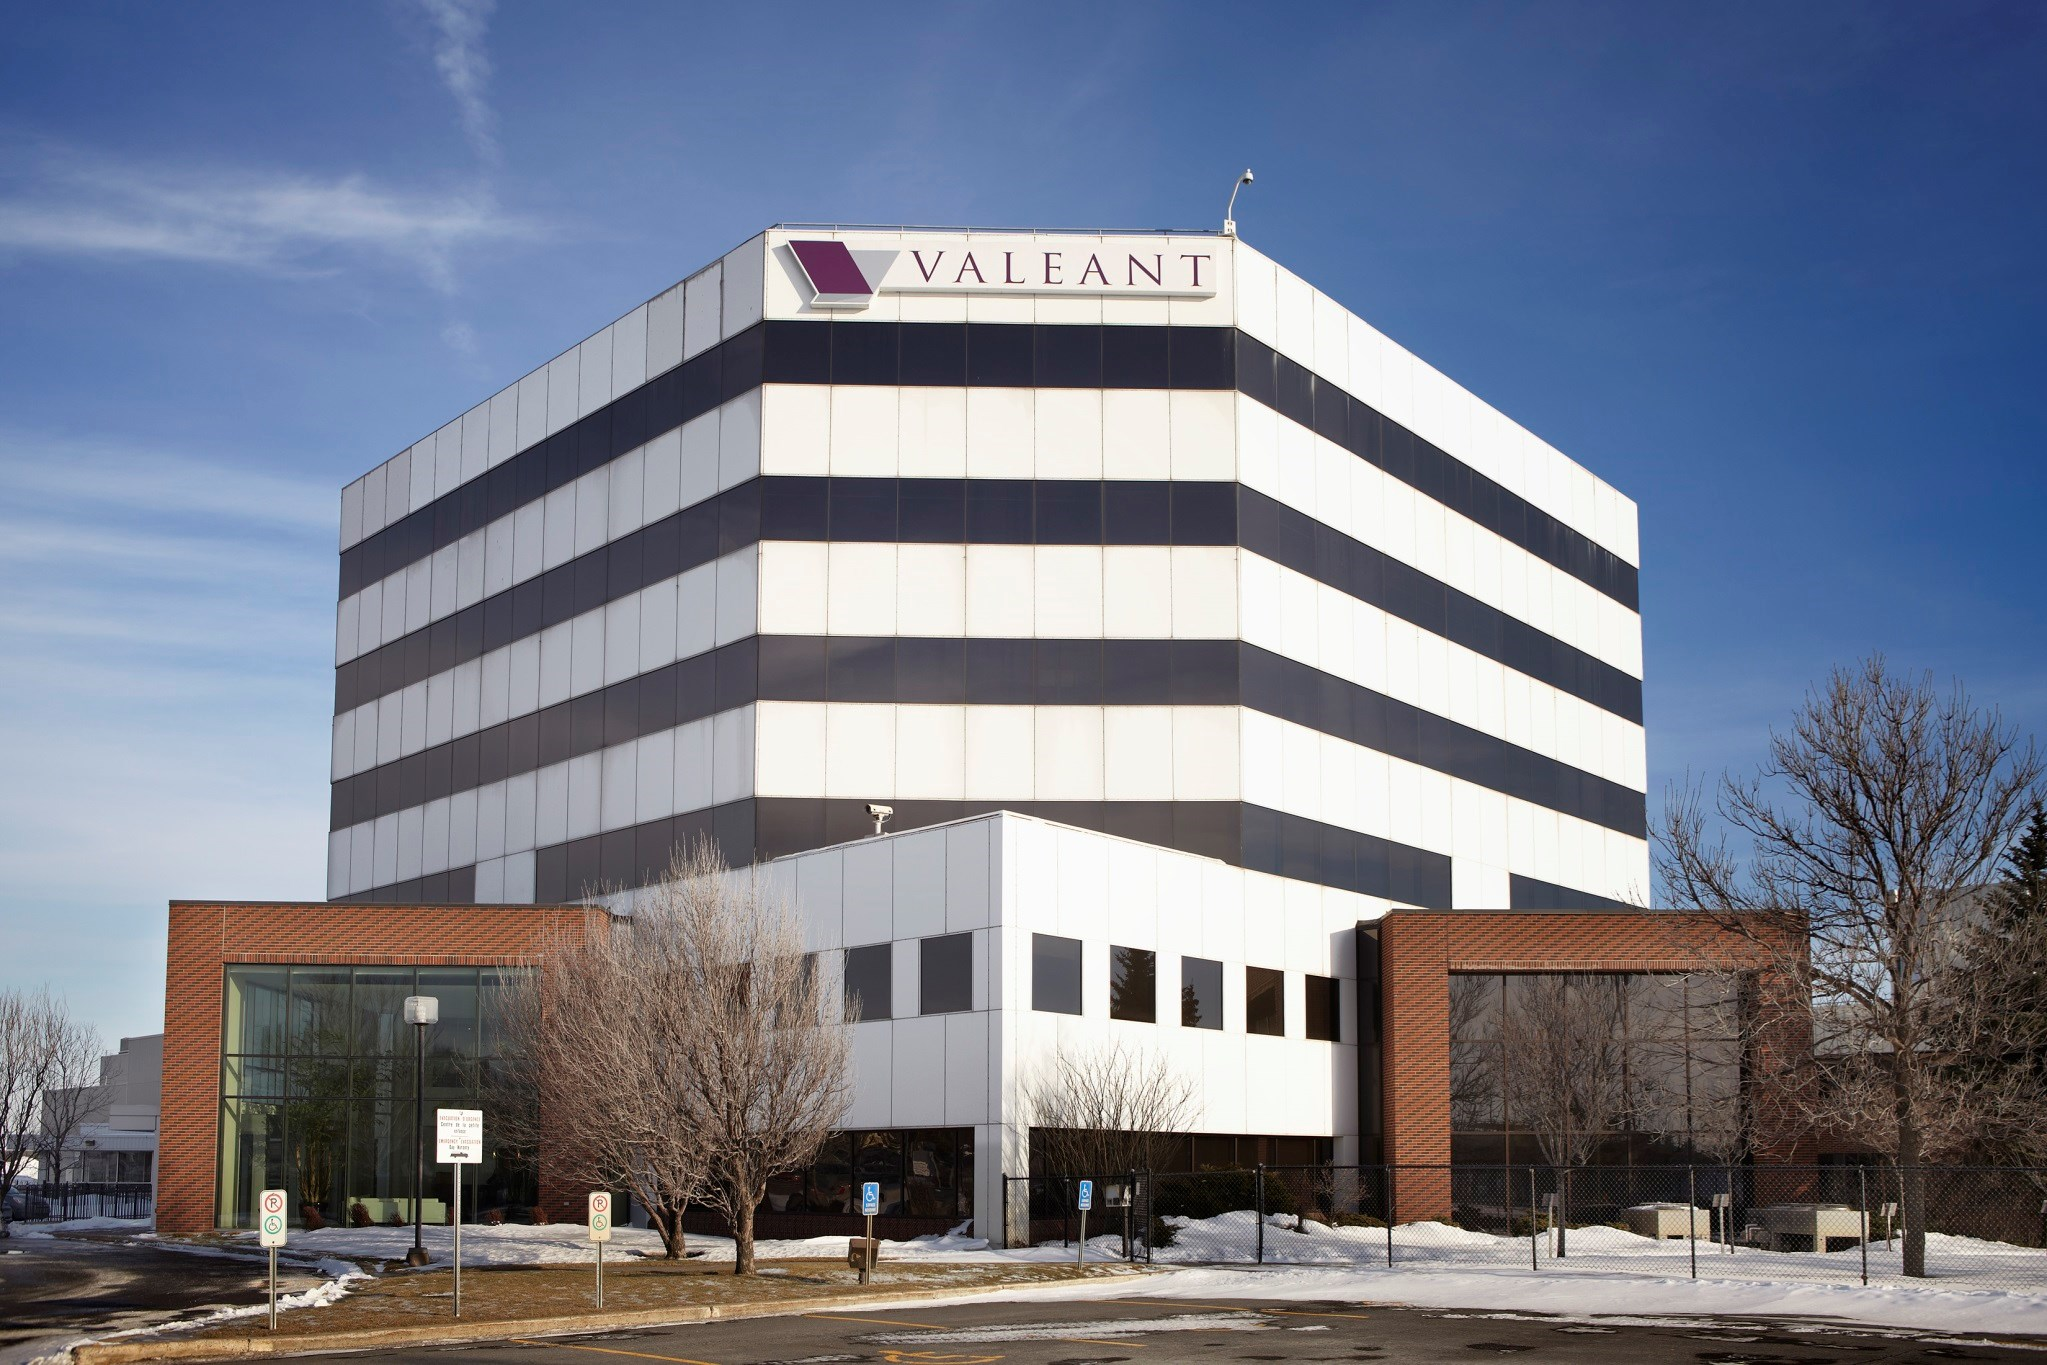 Valeant's controversial model undergoing changes, says CEO